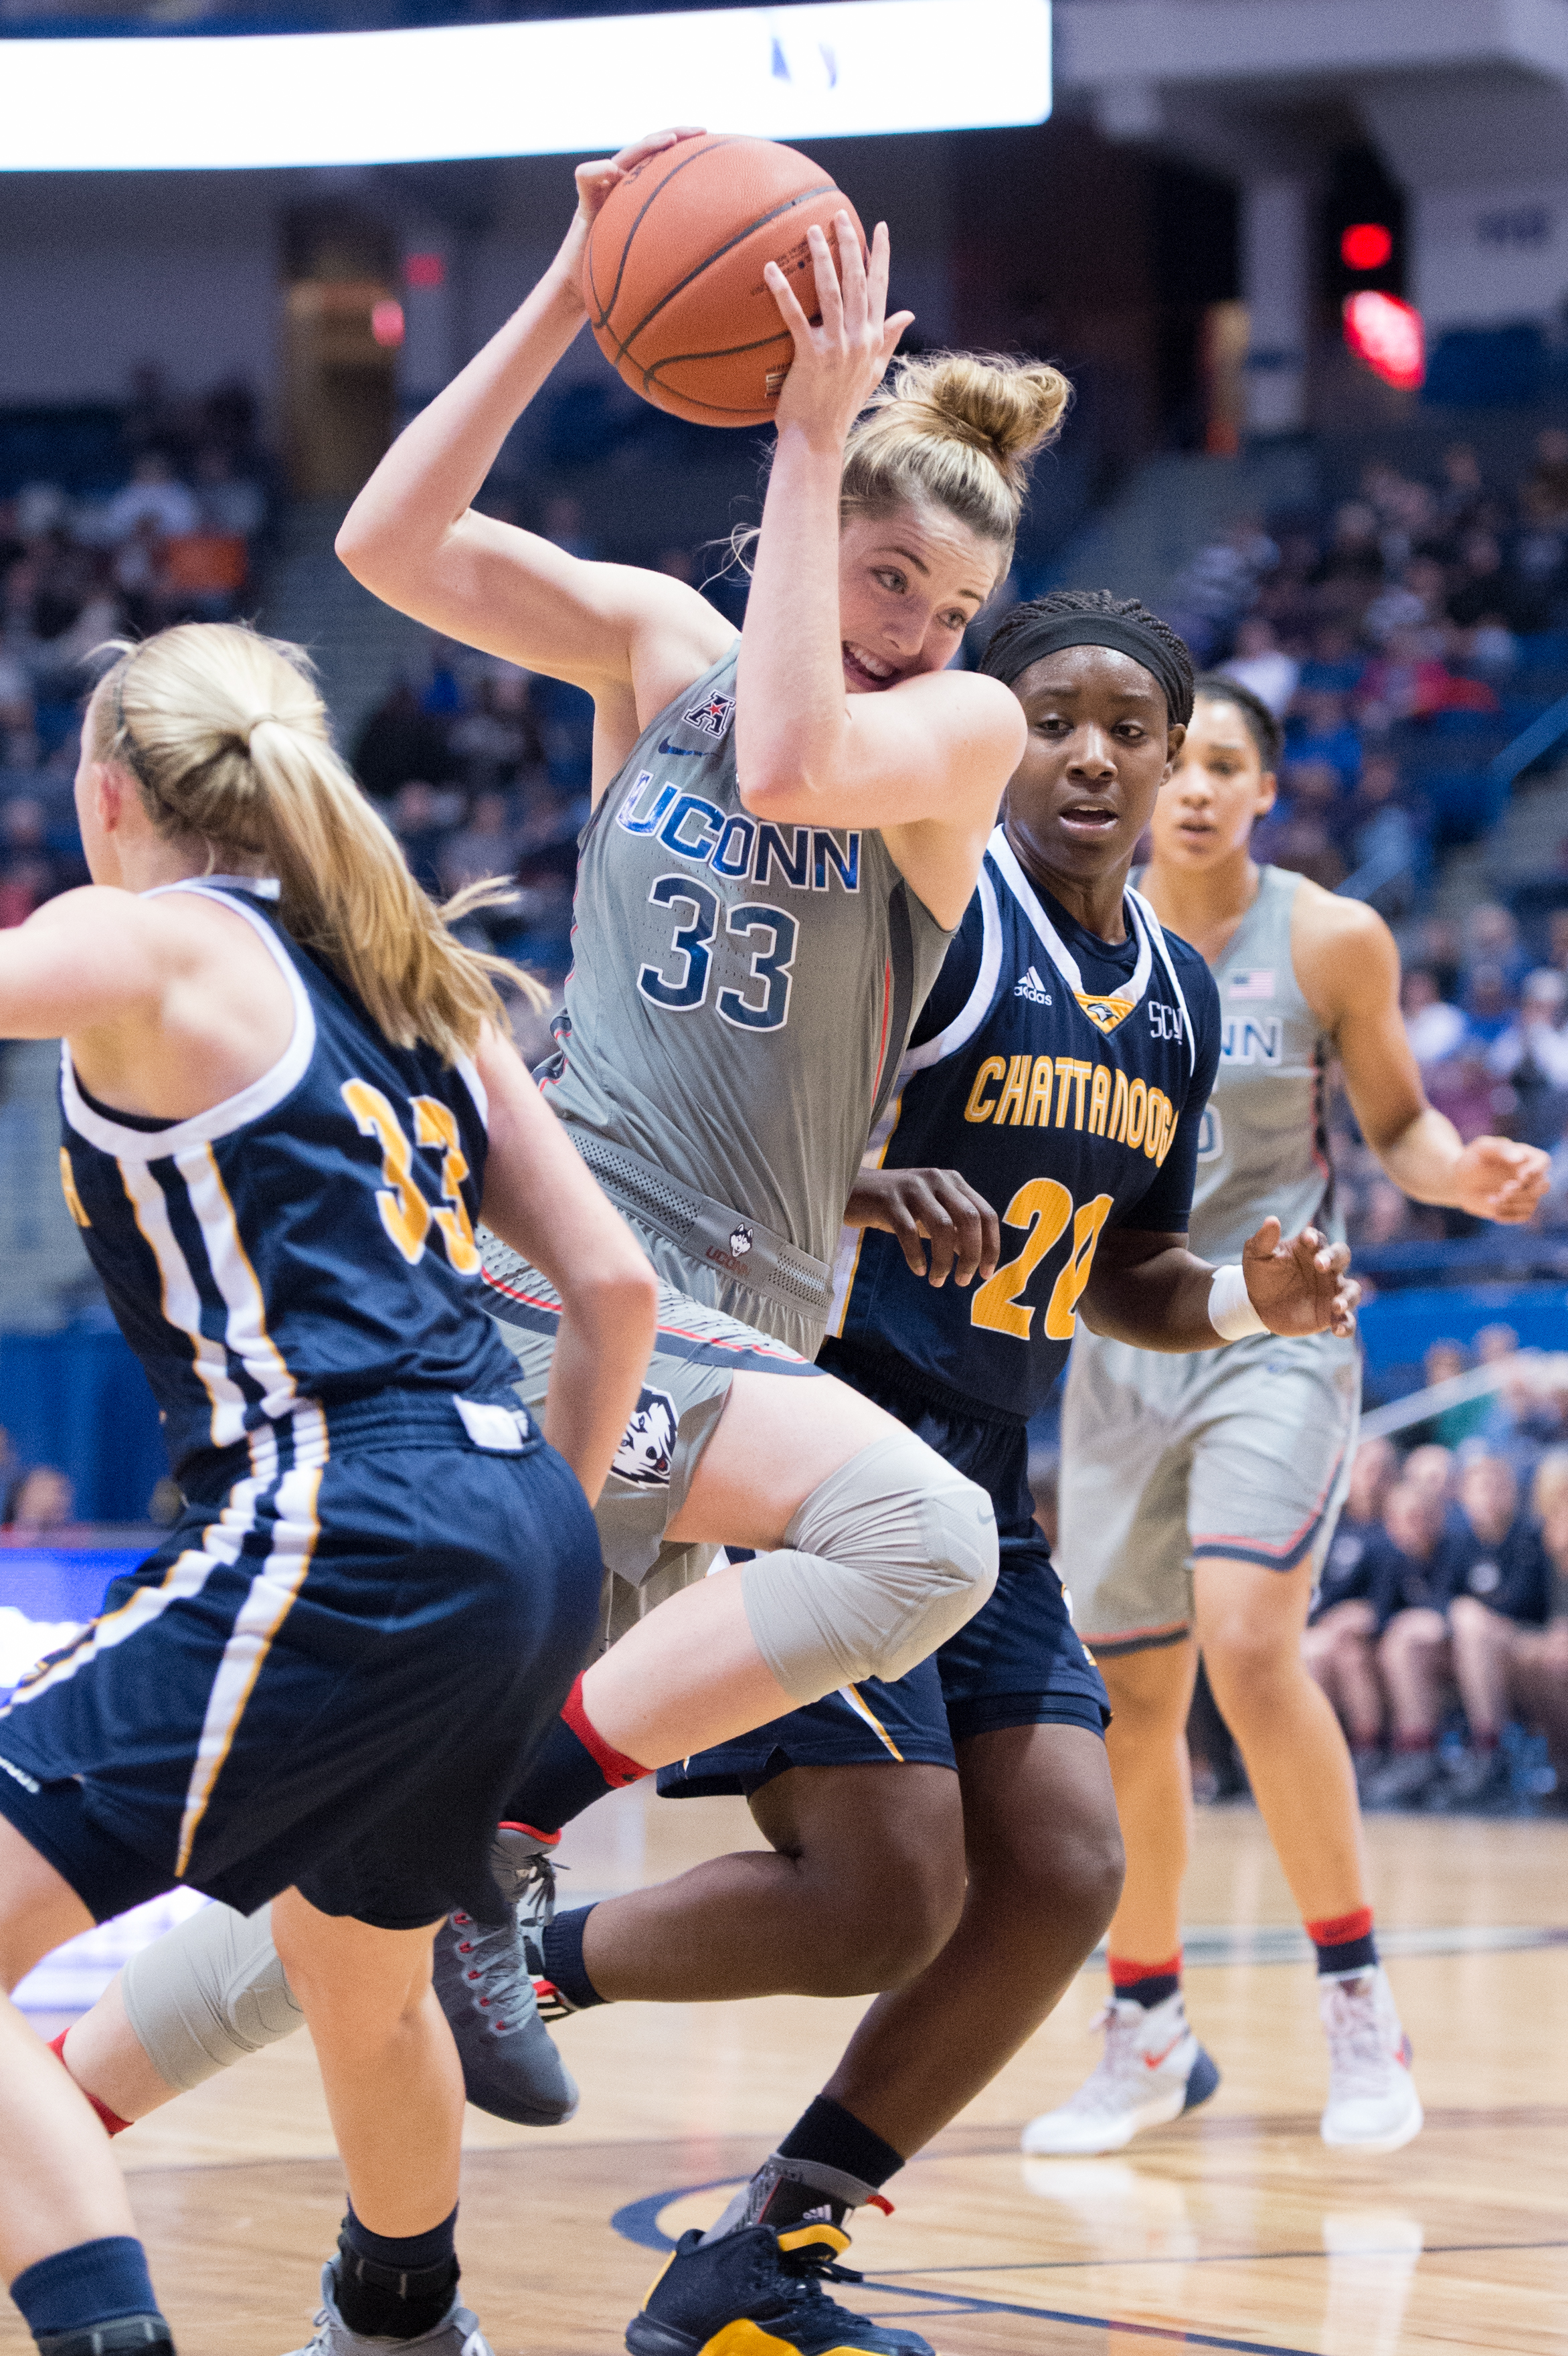 UConn Women's Basketball vs. Chattanooga #266 November 29, 2016.jpg